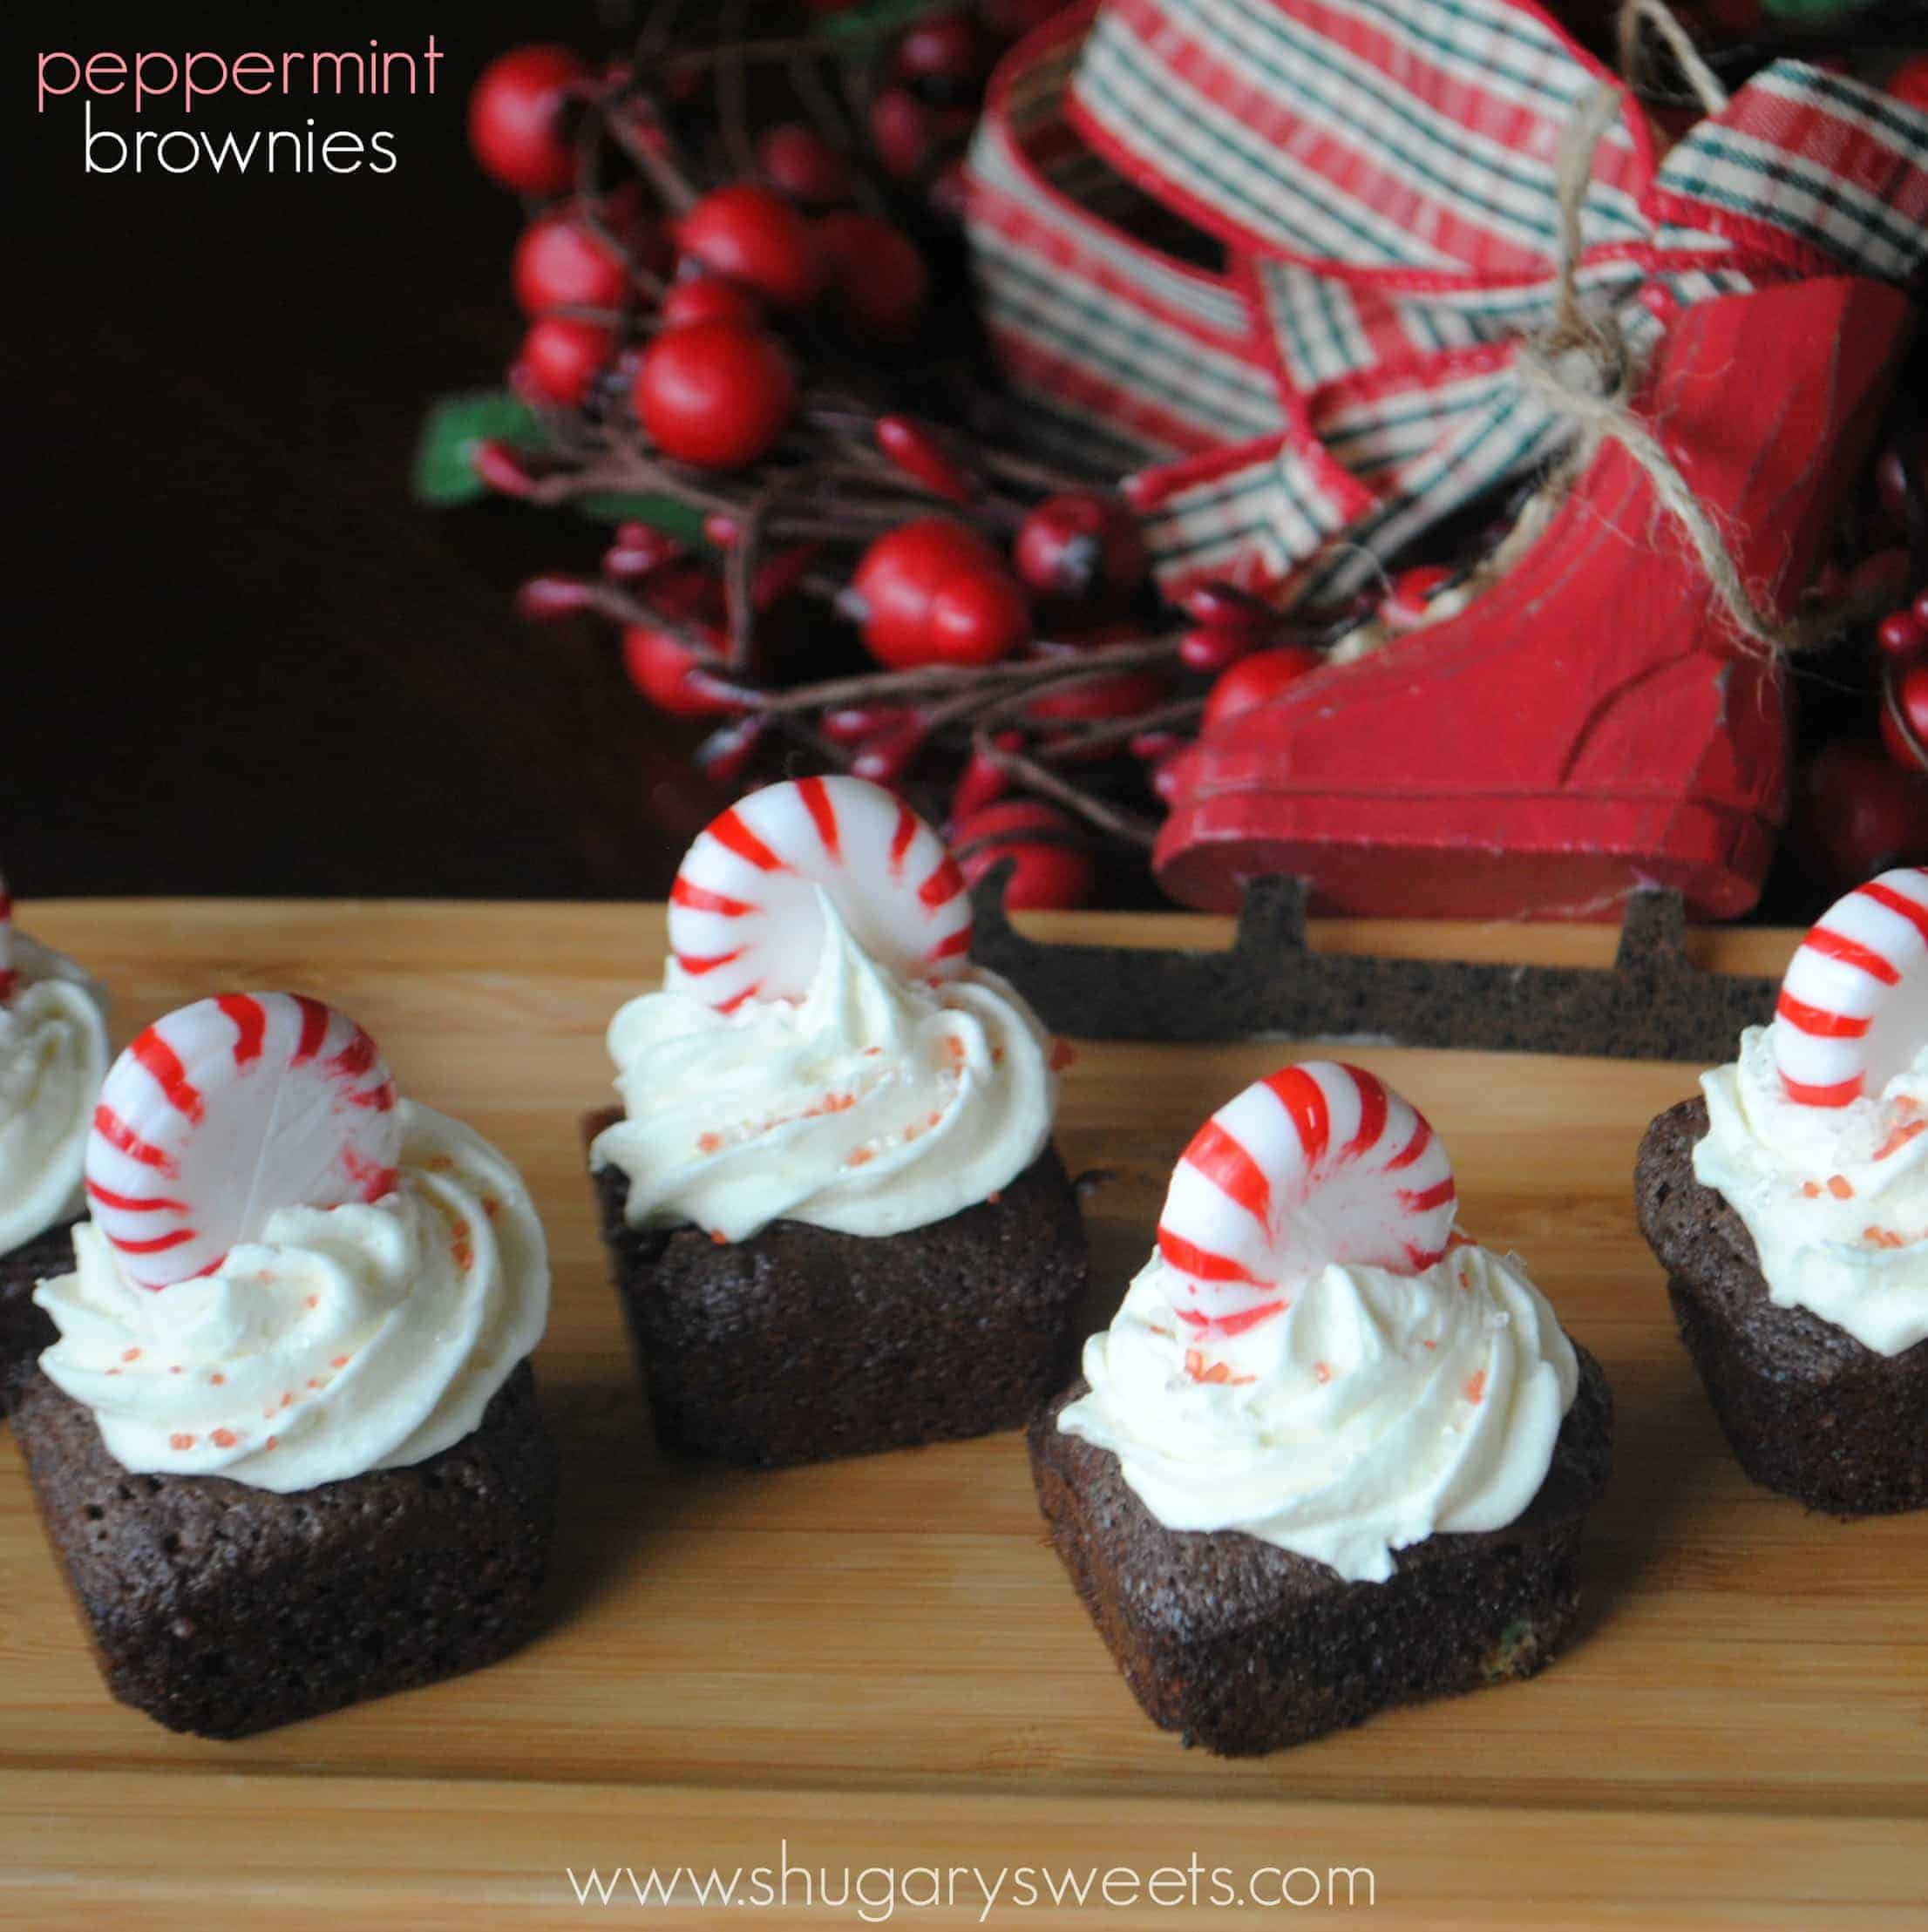 Chocolate Brownies with Peppermint White Chocolate Frosting